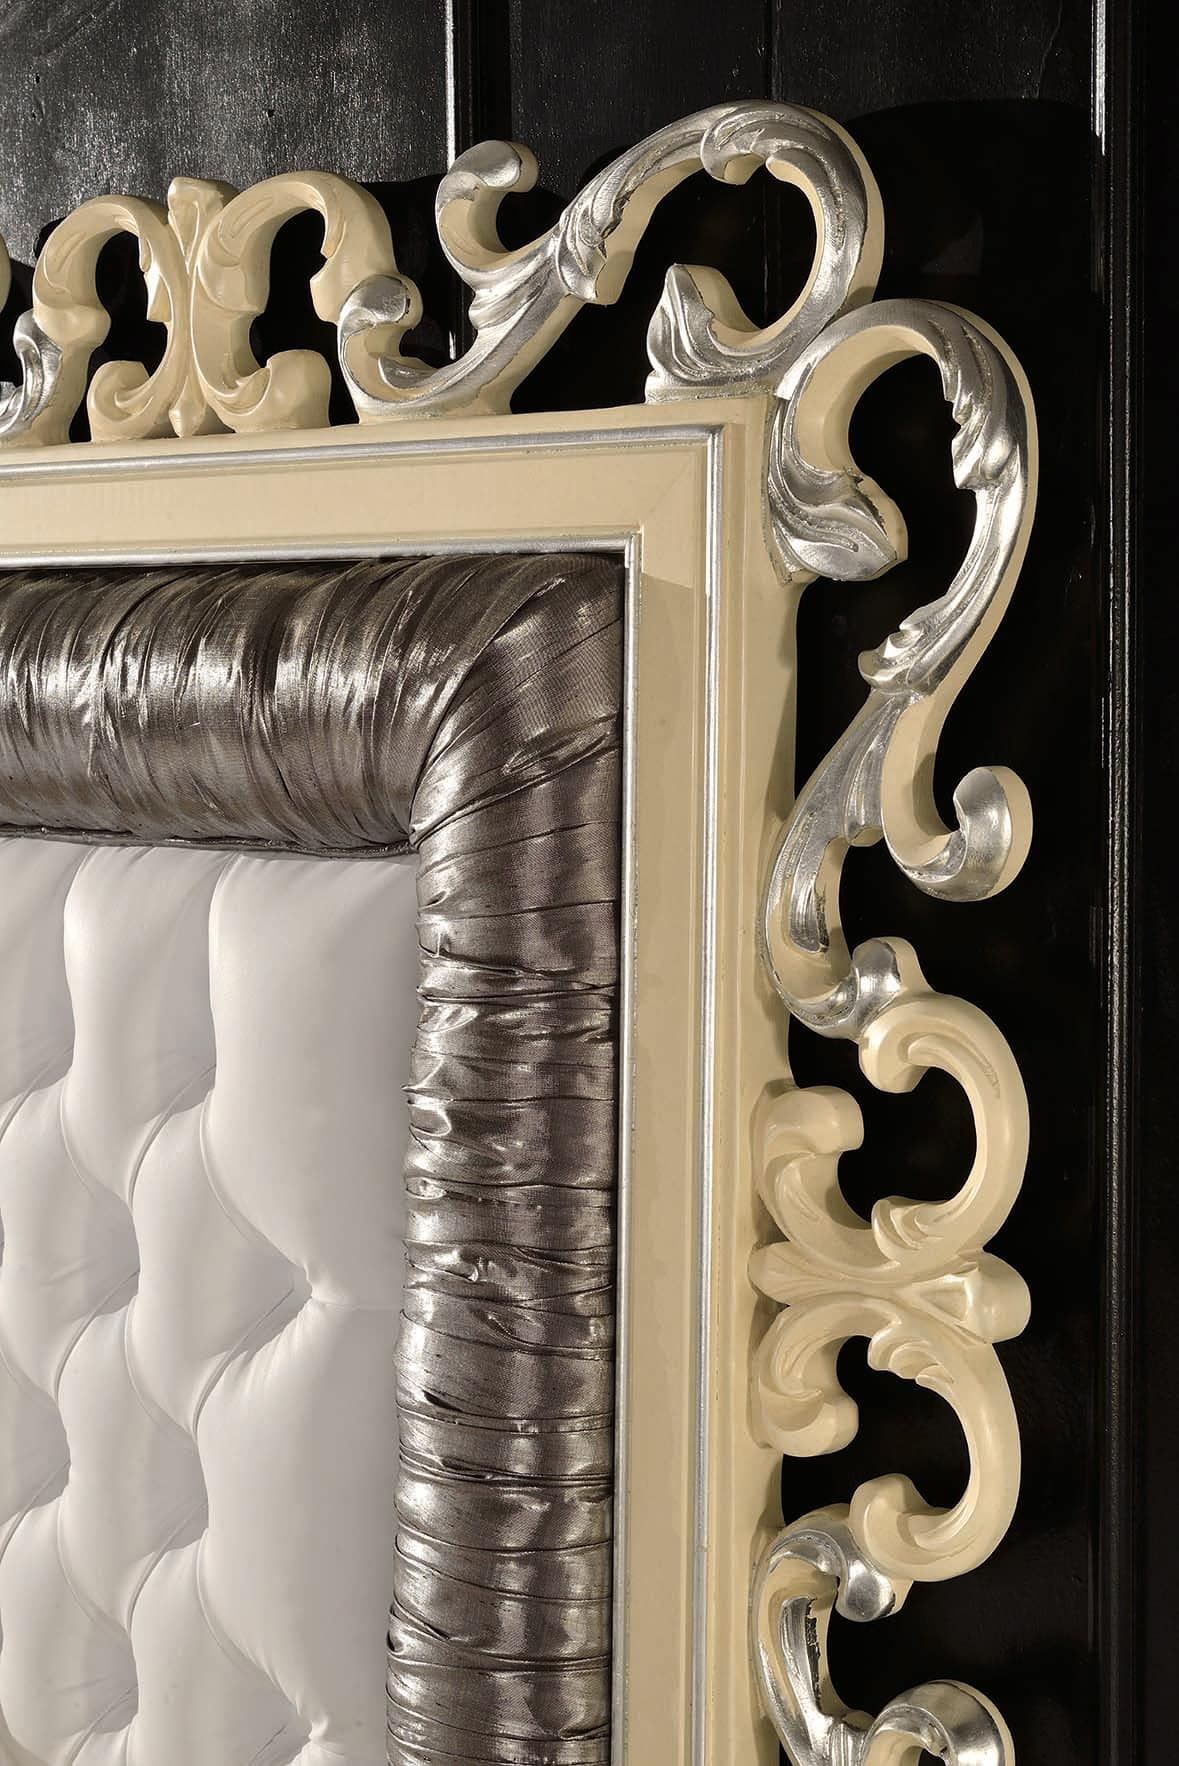 Art. 804, Bed with headboard carved and quilted, in classic style